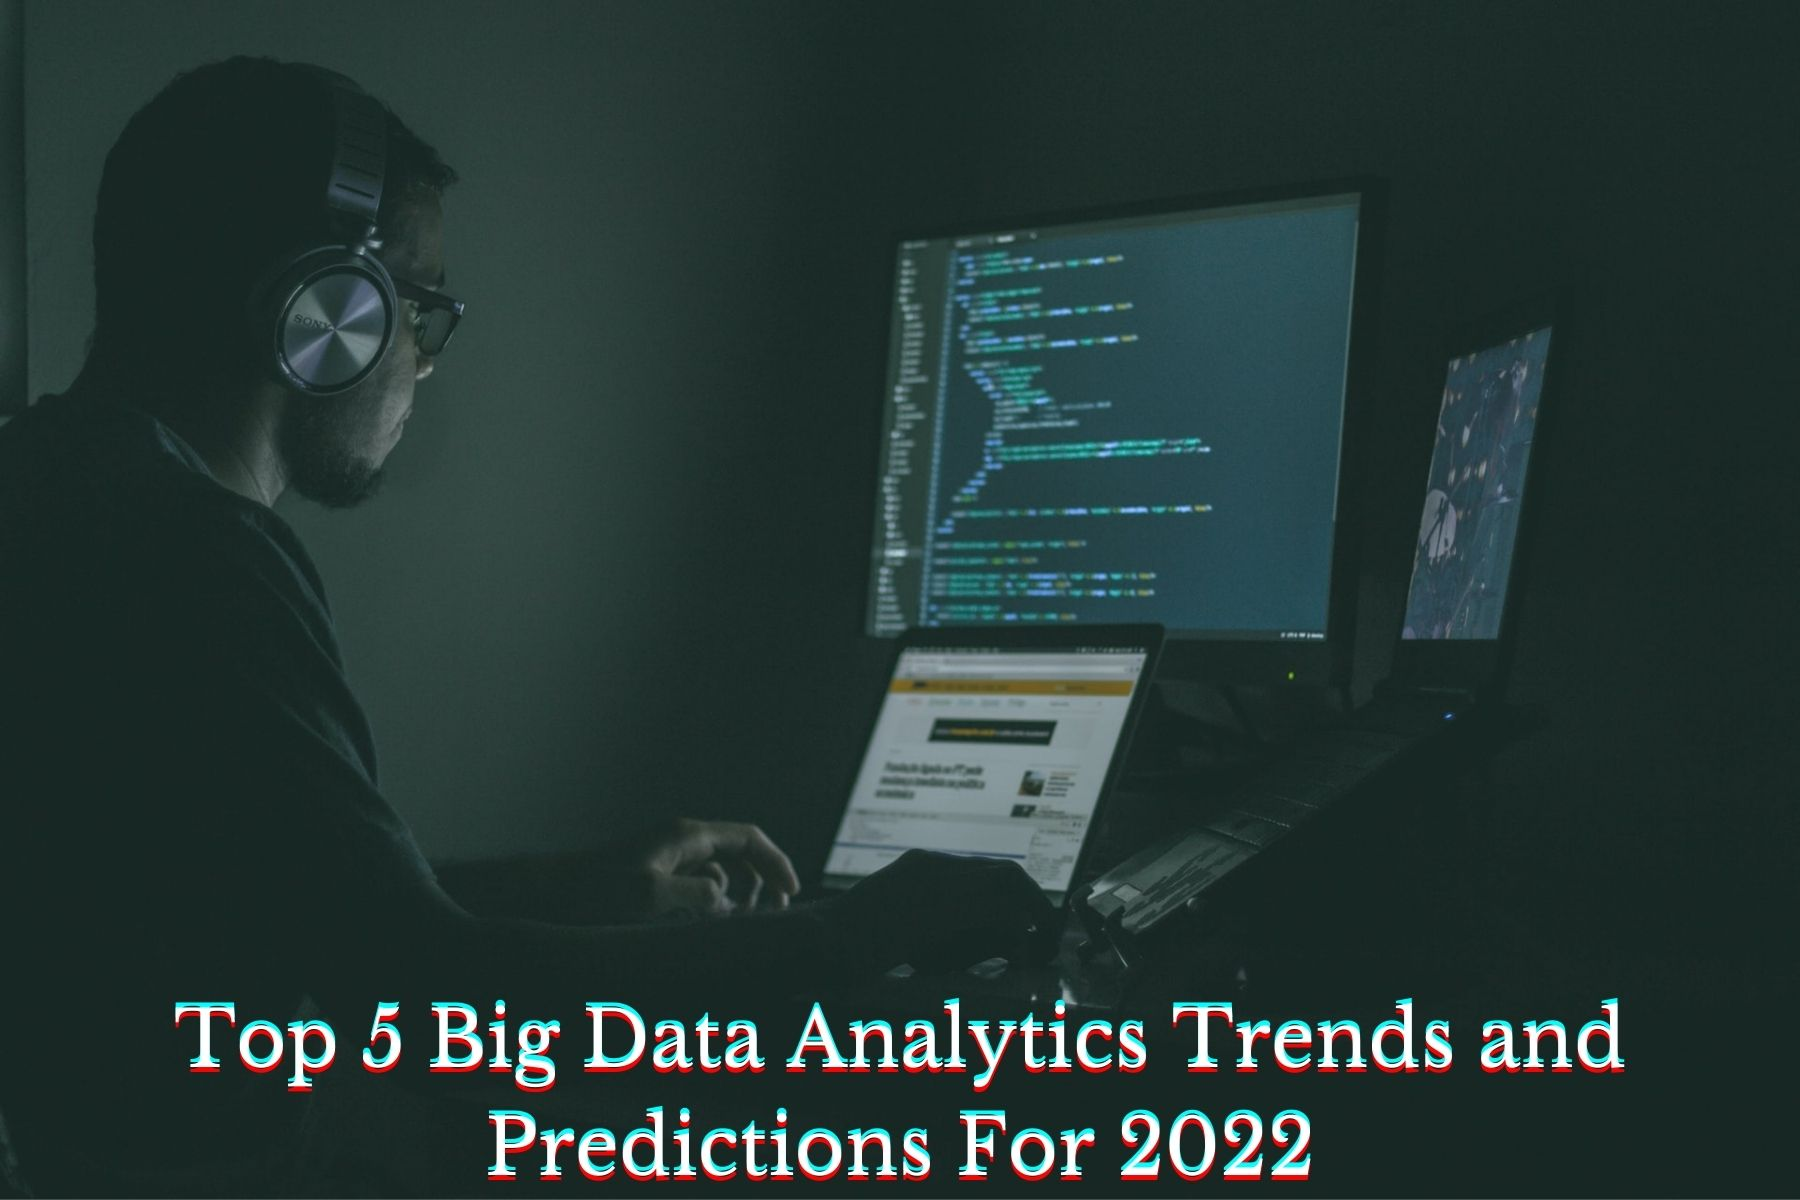 Top 5 Big Data Analytics Trends and Predictions For 2022